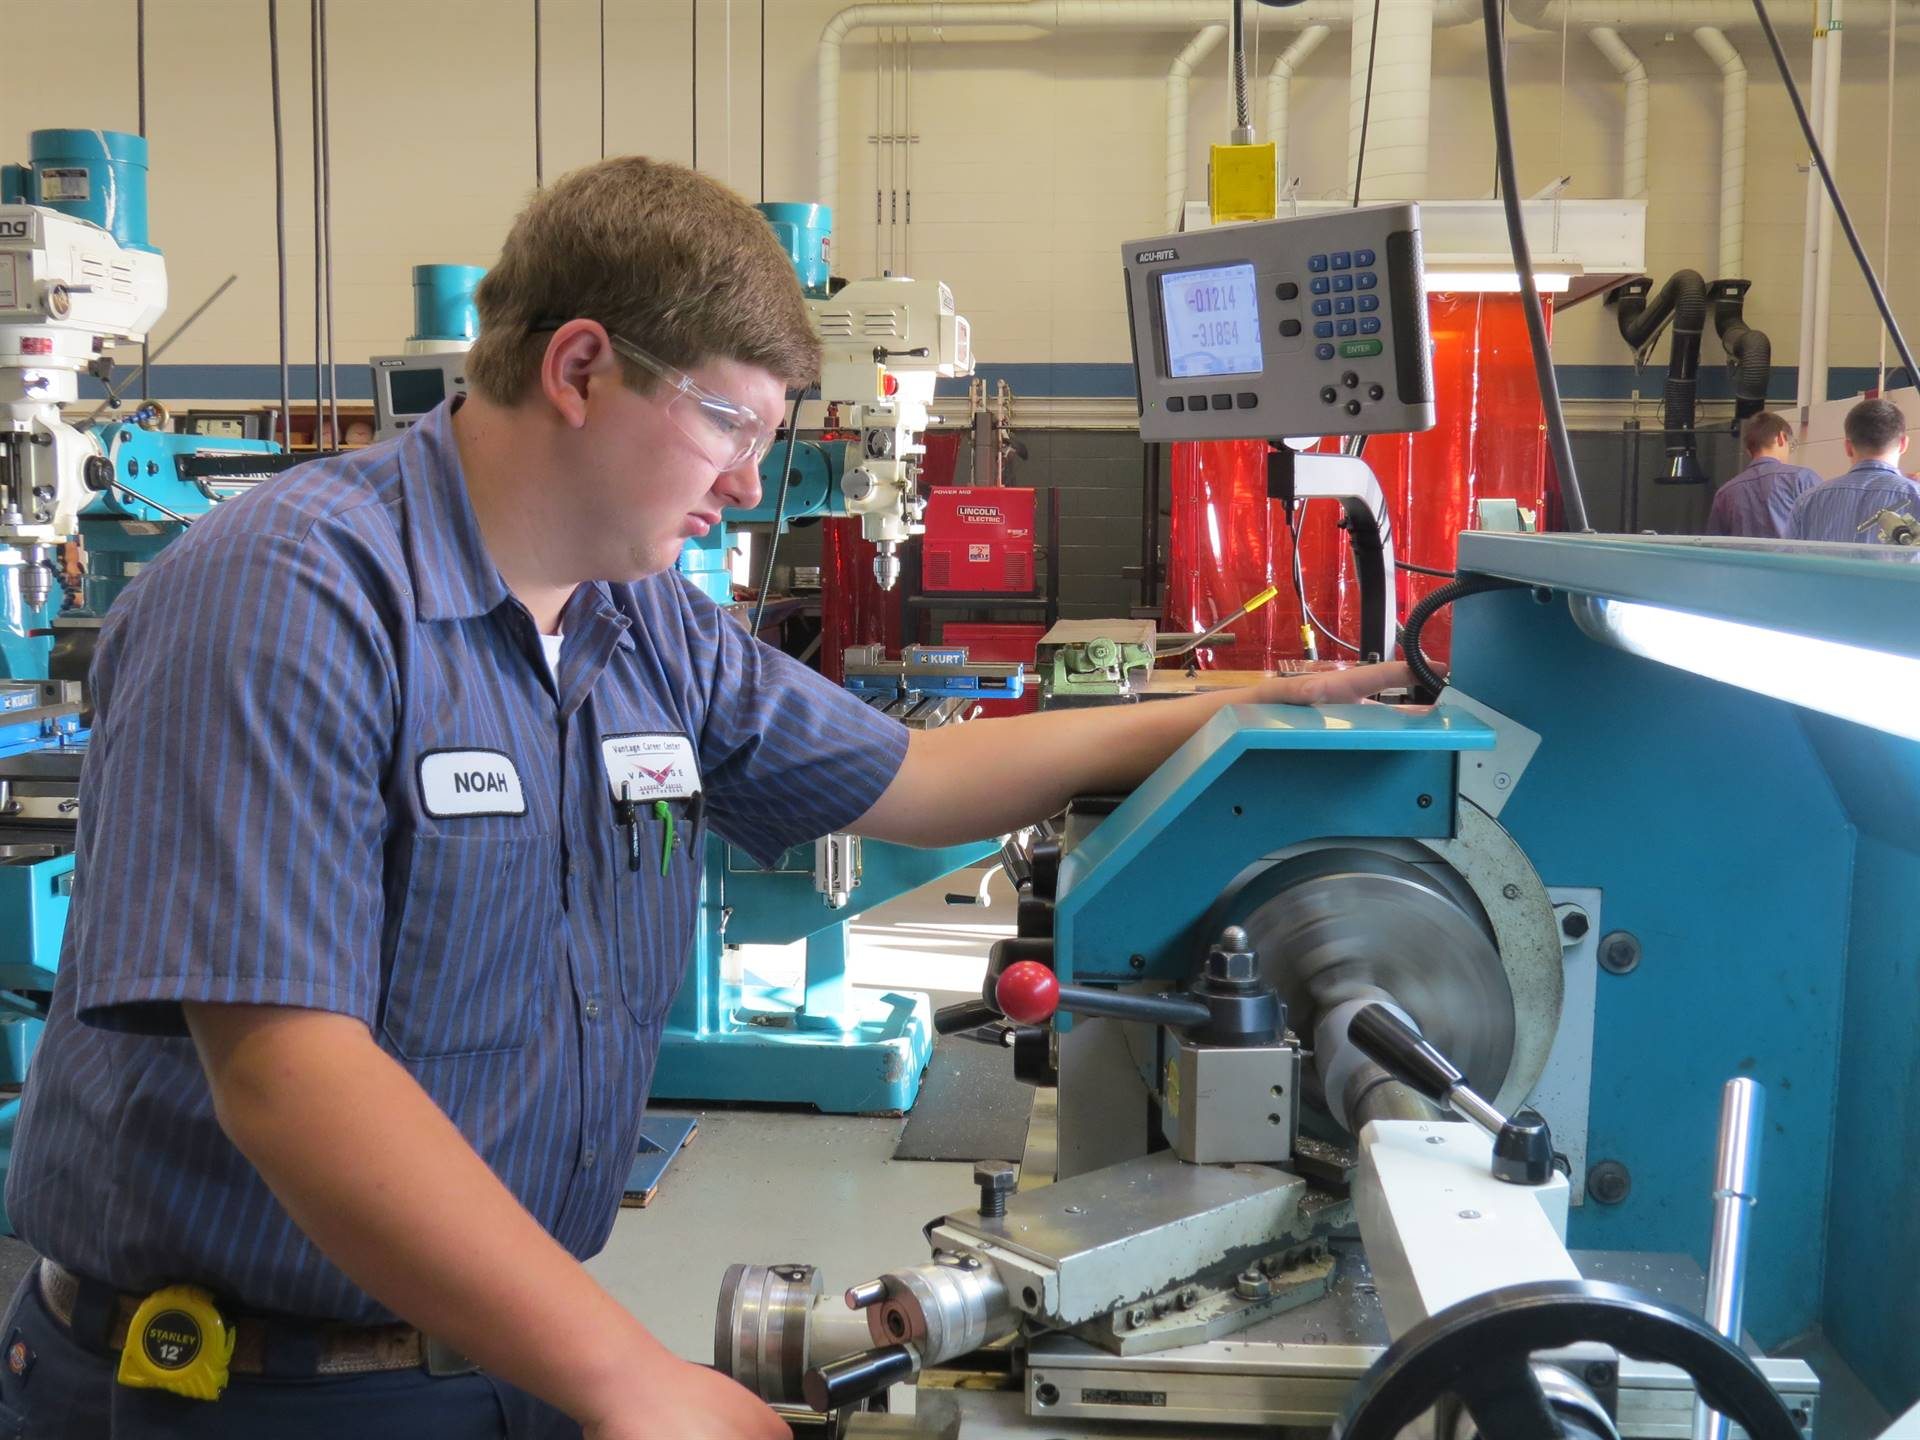 Male Industrial Mechanics student working on equipment